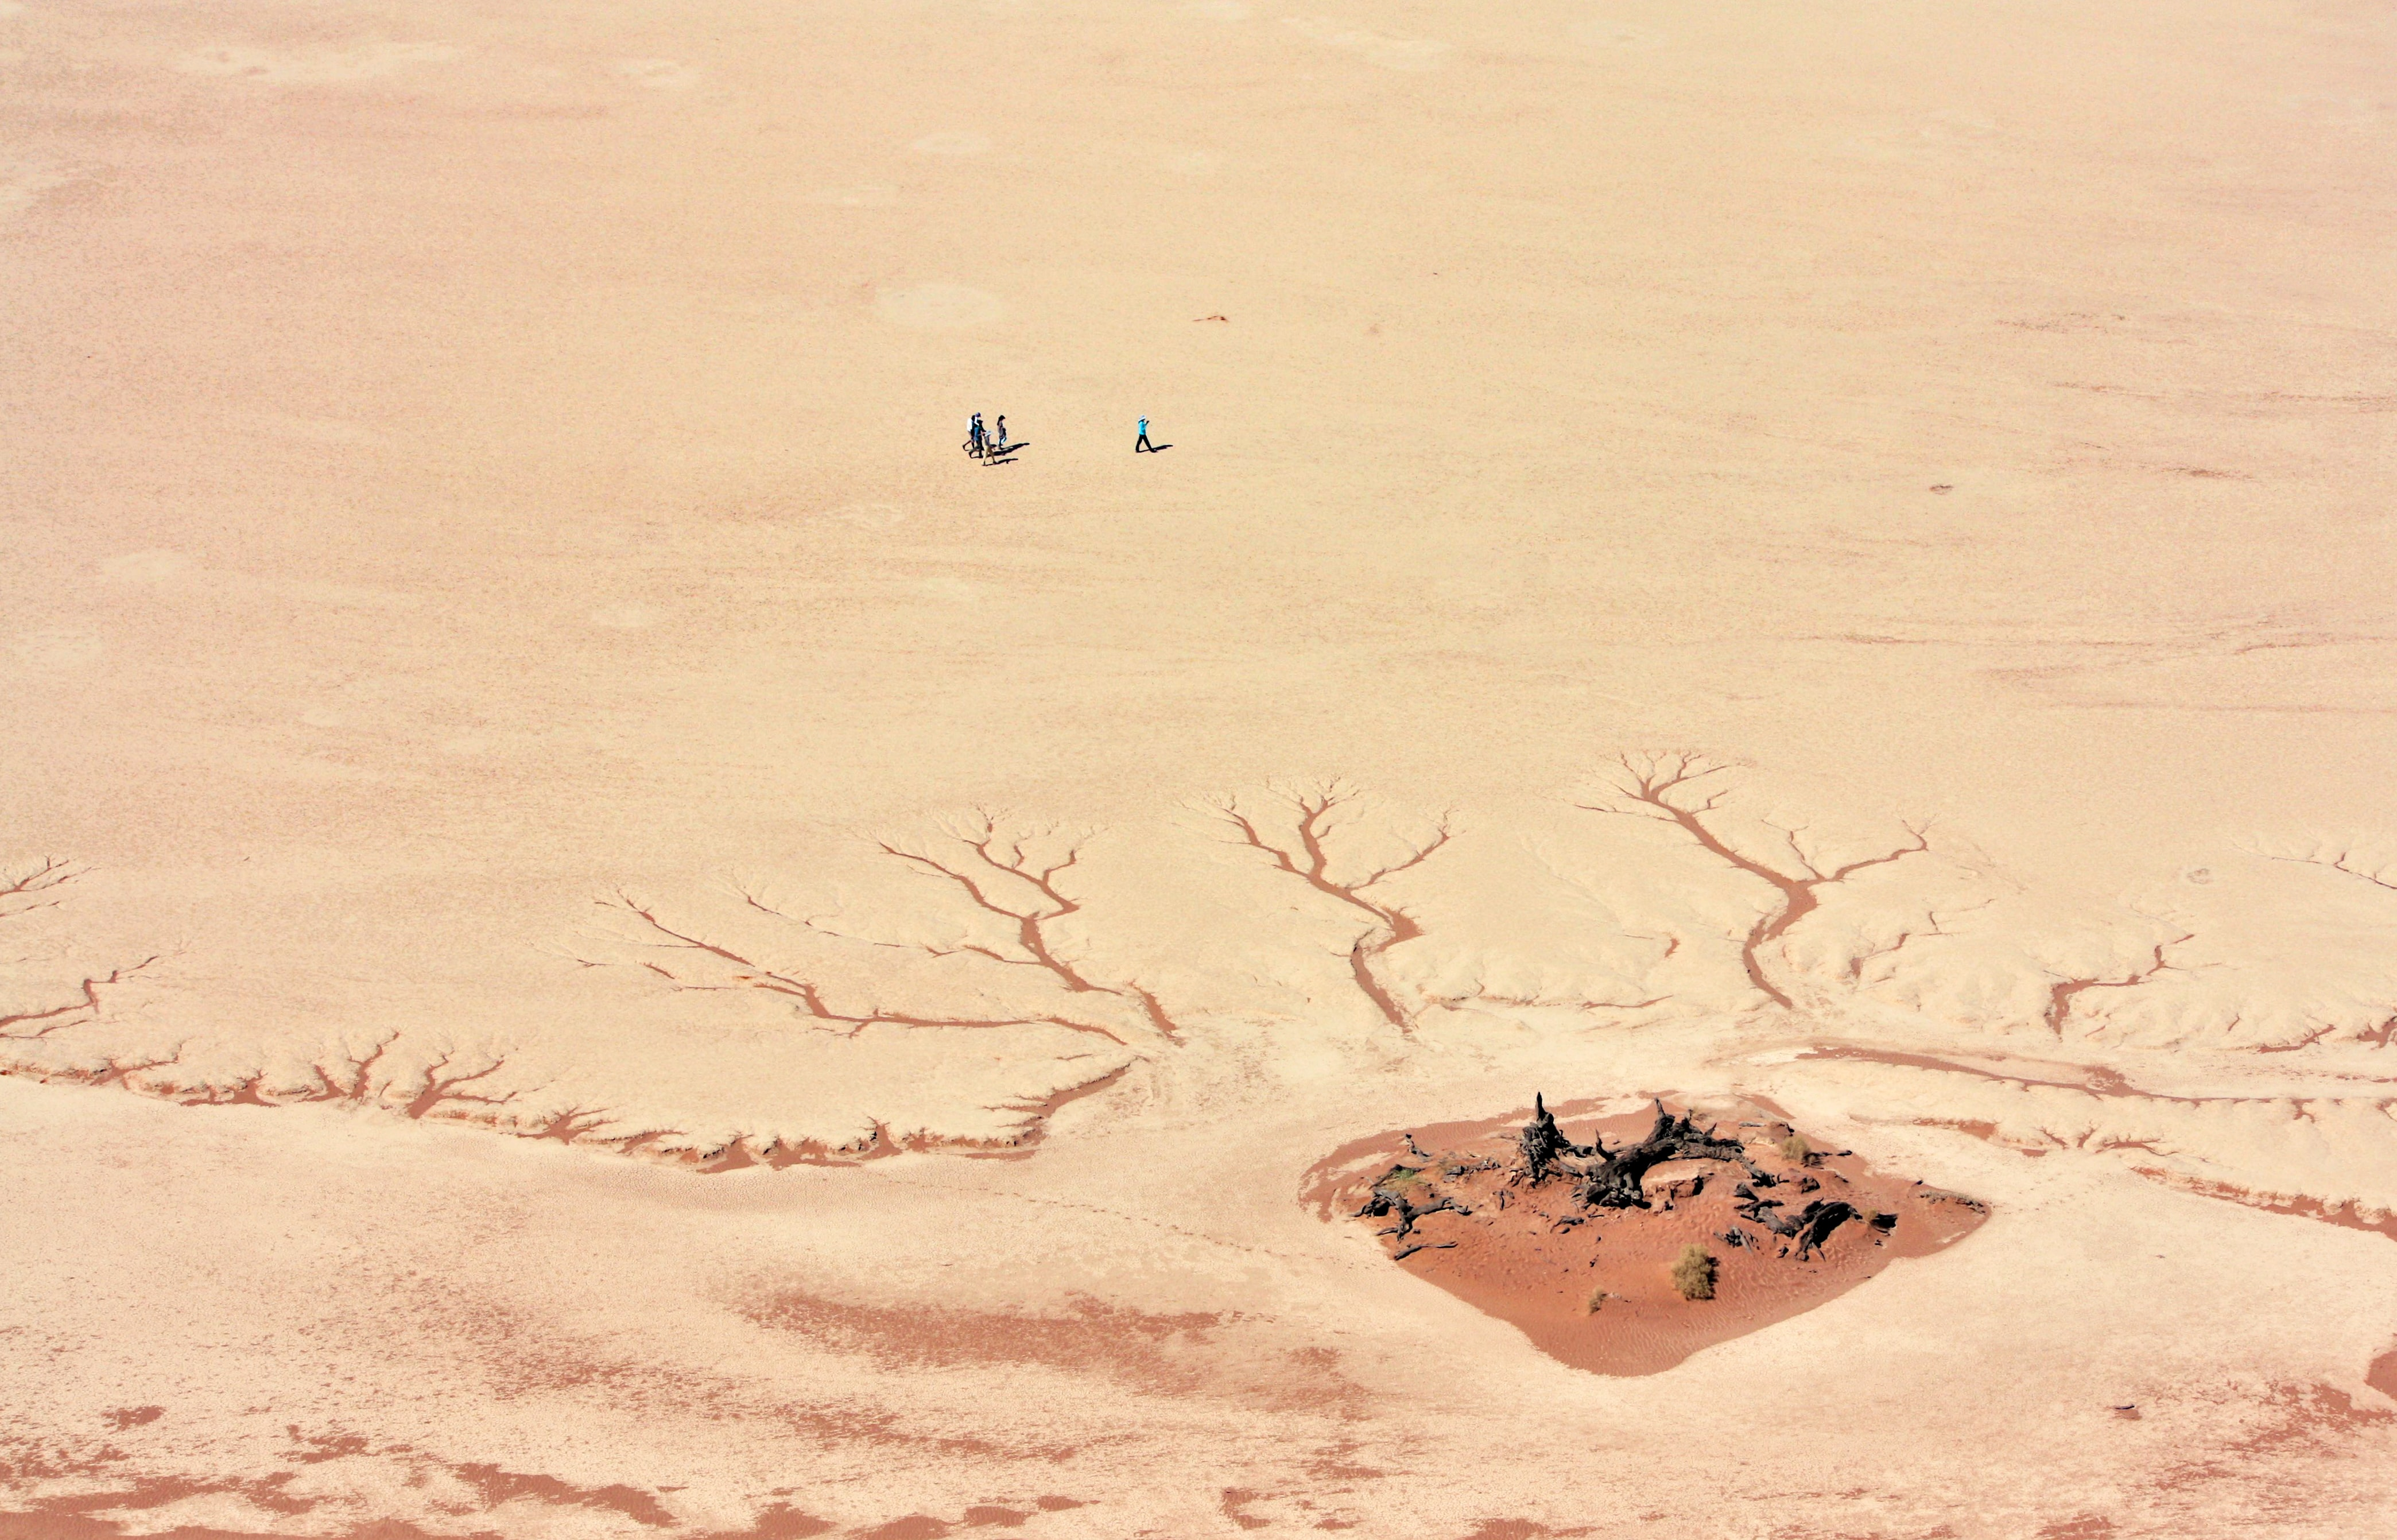 aerial view of desert during daytime